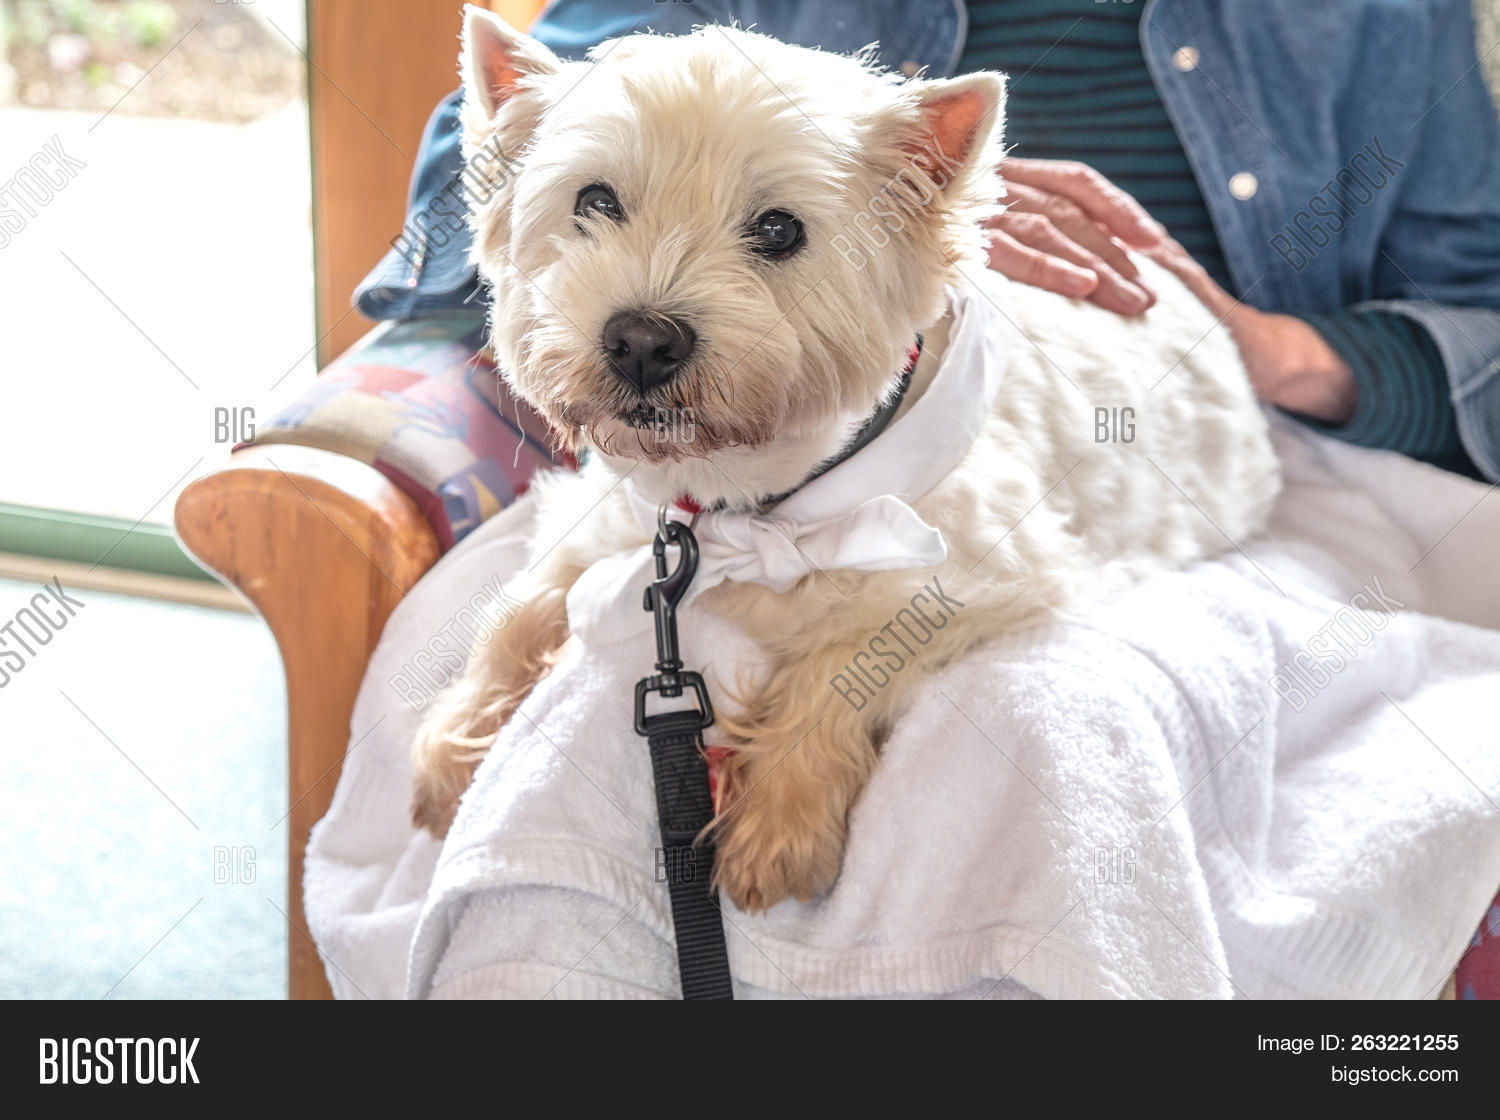 Therapy Pet Dog Image & Photo (Free Trial) | Bigstock